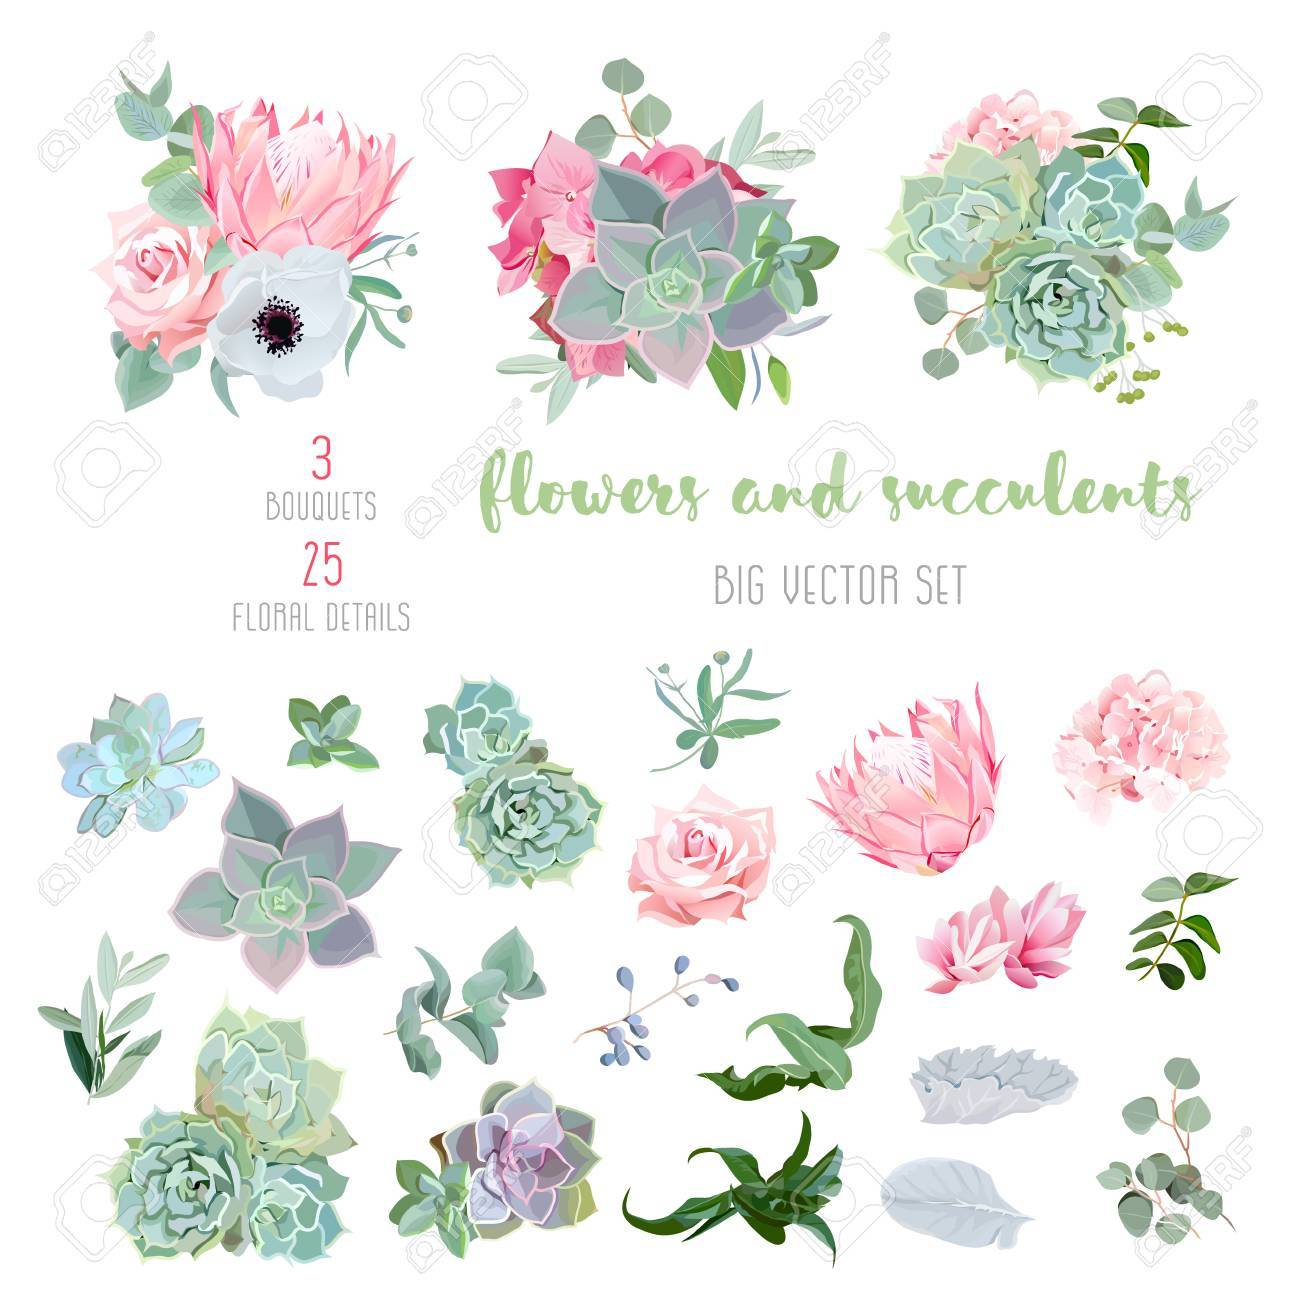 Succulents, protea, rose, anemone, echeveria, hydrangea, decorative plants big vector collection. All elements are isolated and editable. - 66855088